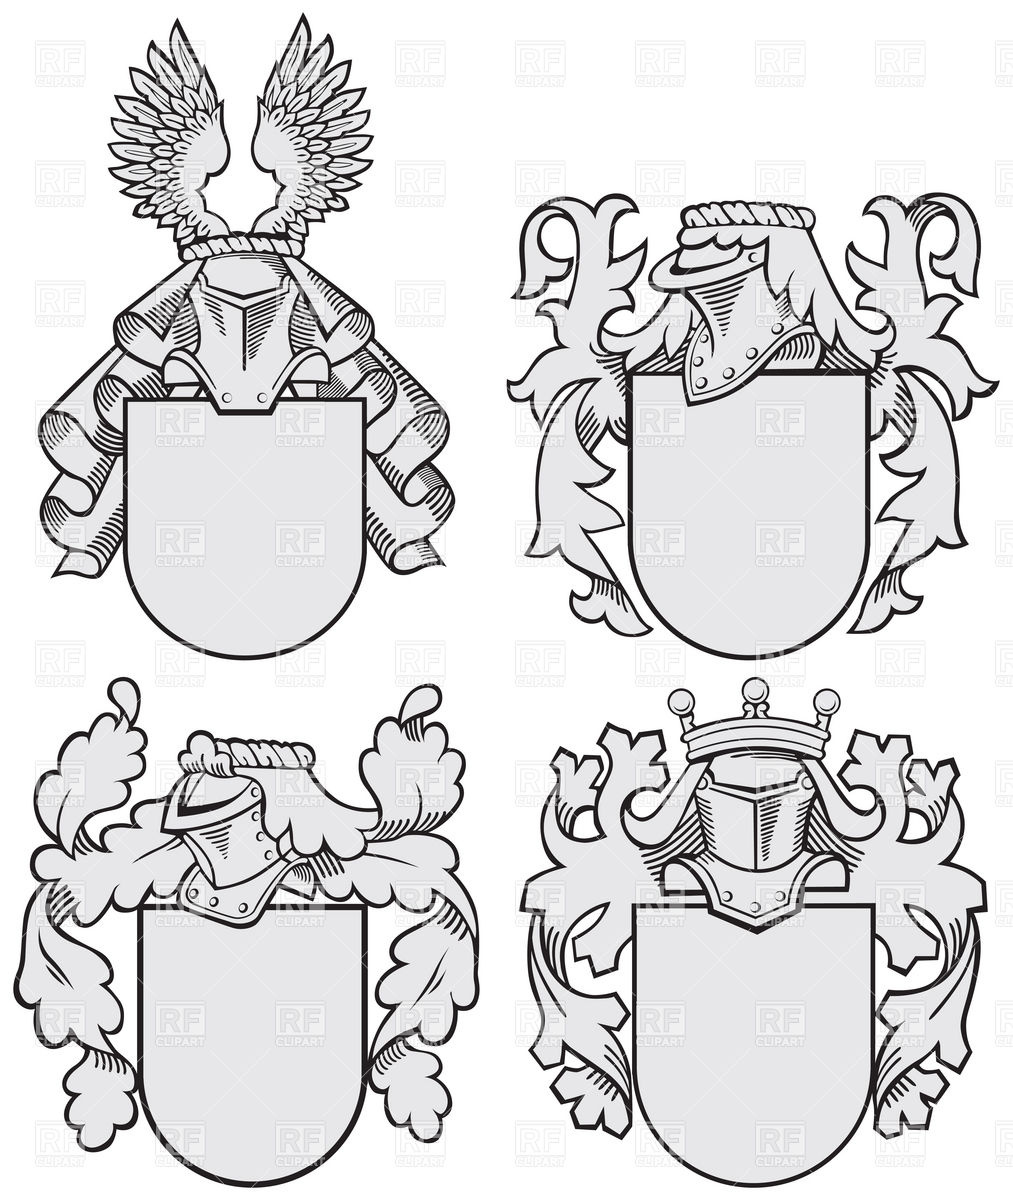 worksheet Coat Of Arms Worksheet shield drawing template at getdrawings com free for personal use 1013x1200 heraldic elements templates